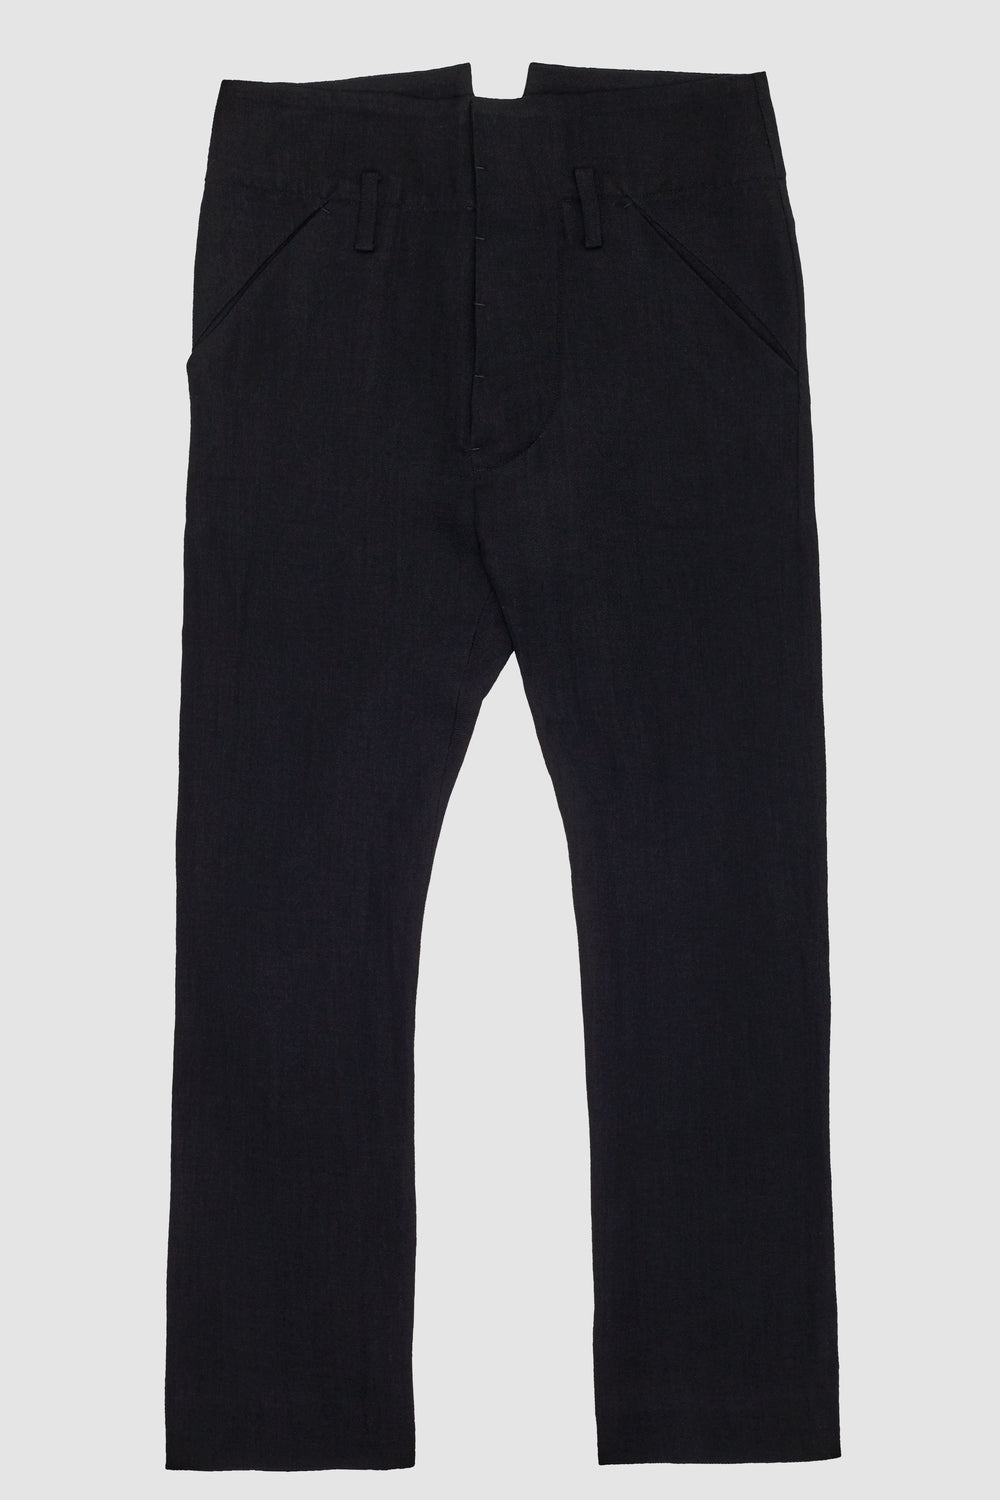 Low Crotch Pants Black